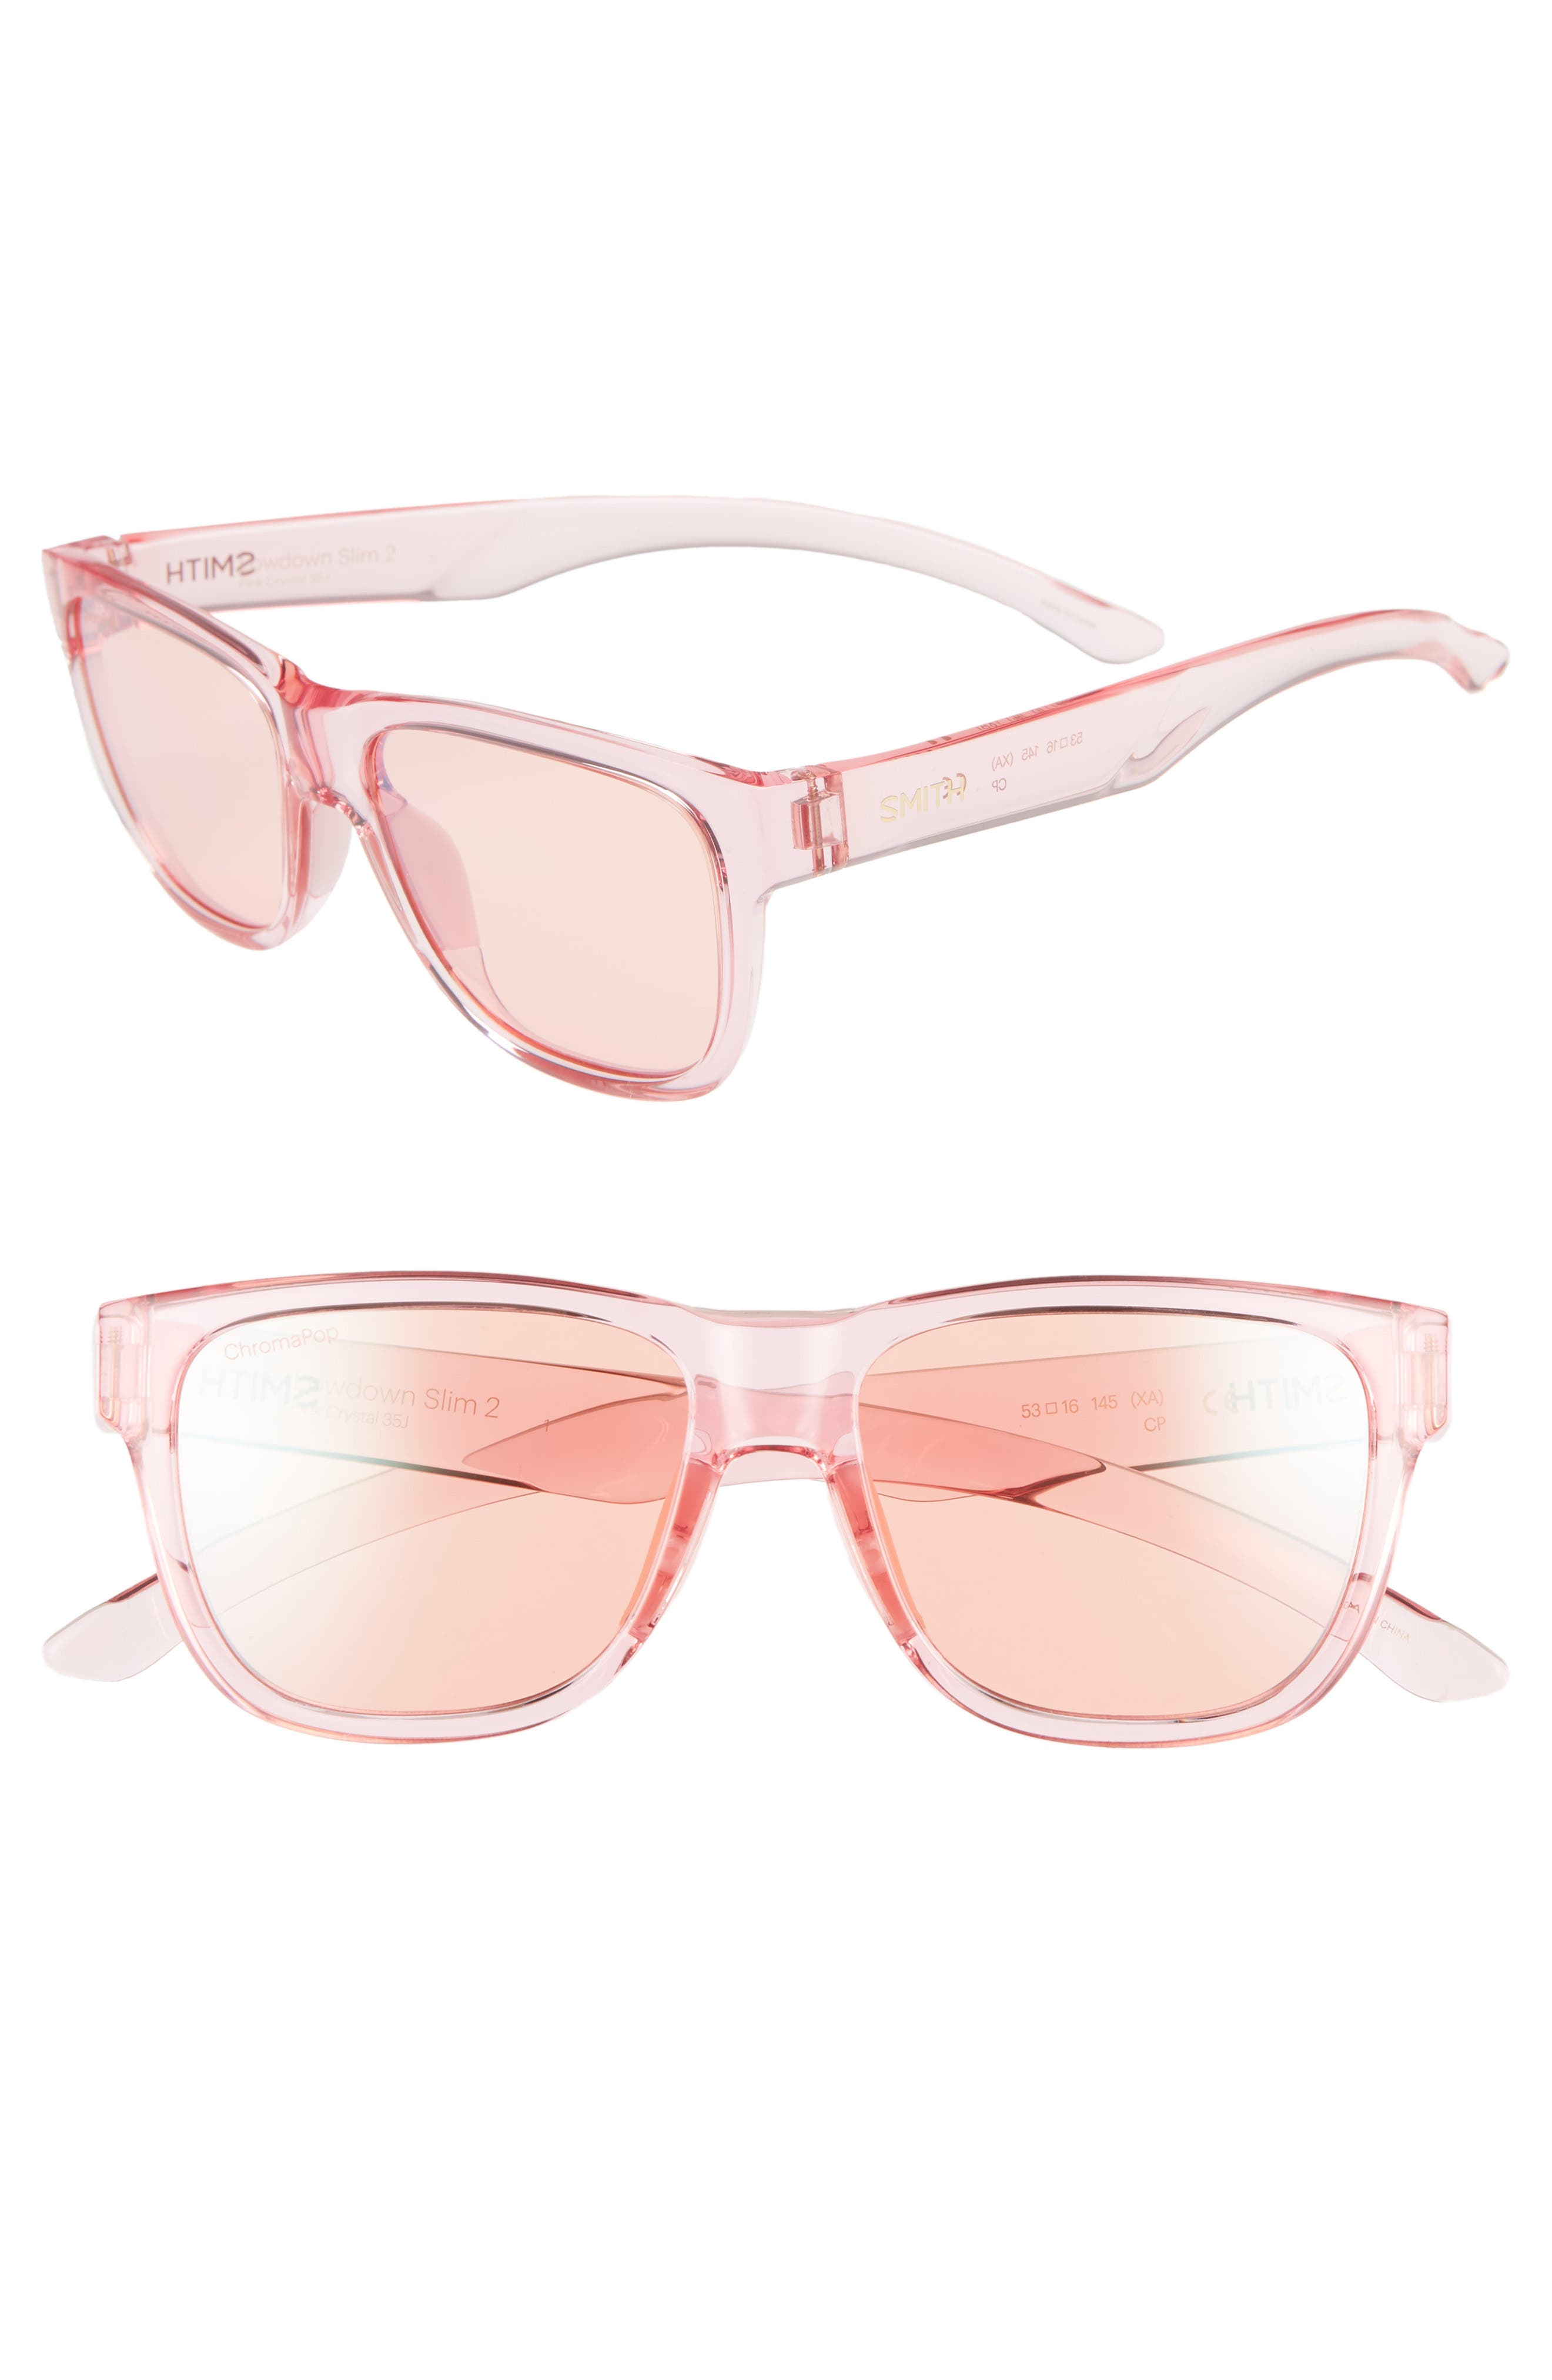 Lowdown Slim 2 53mm ChromaPop<sup>™</sup> Square Sunglasses,                         Main,                         color, PINK CRYSTAL